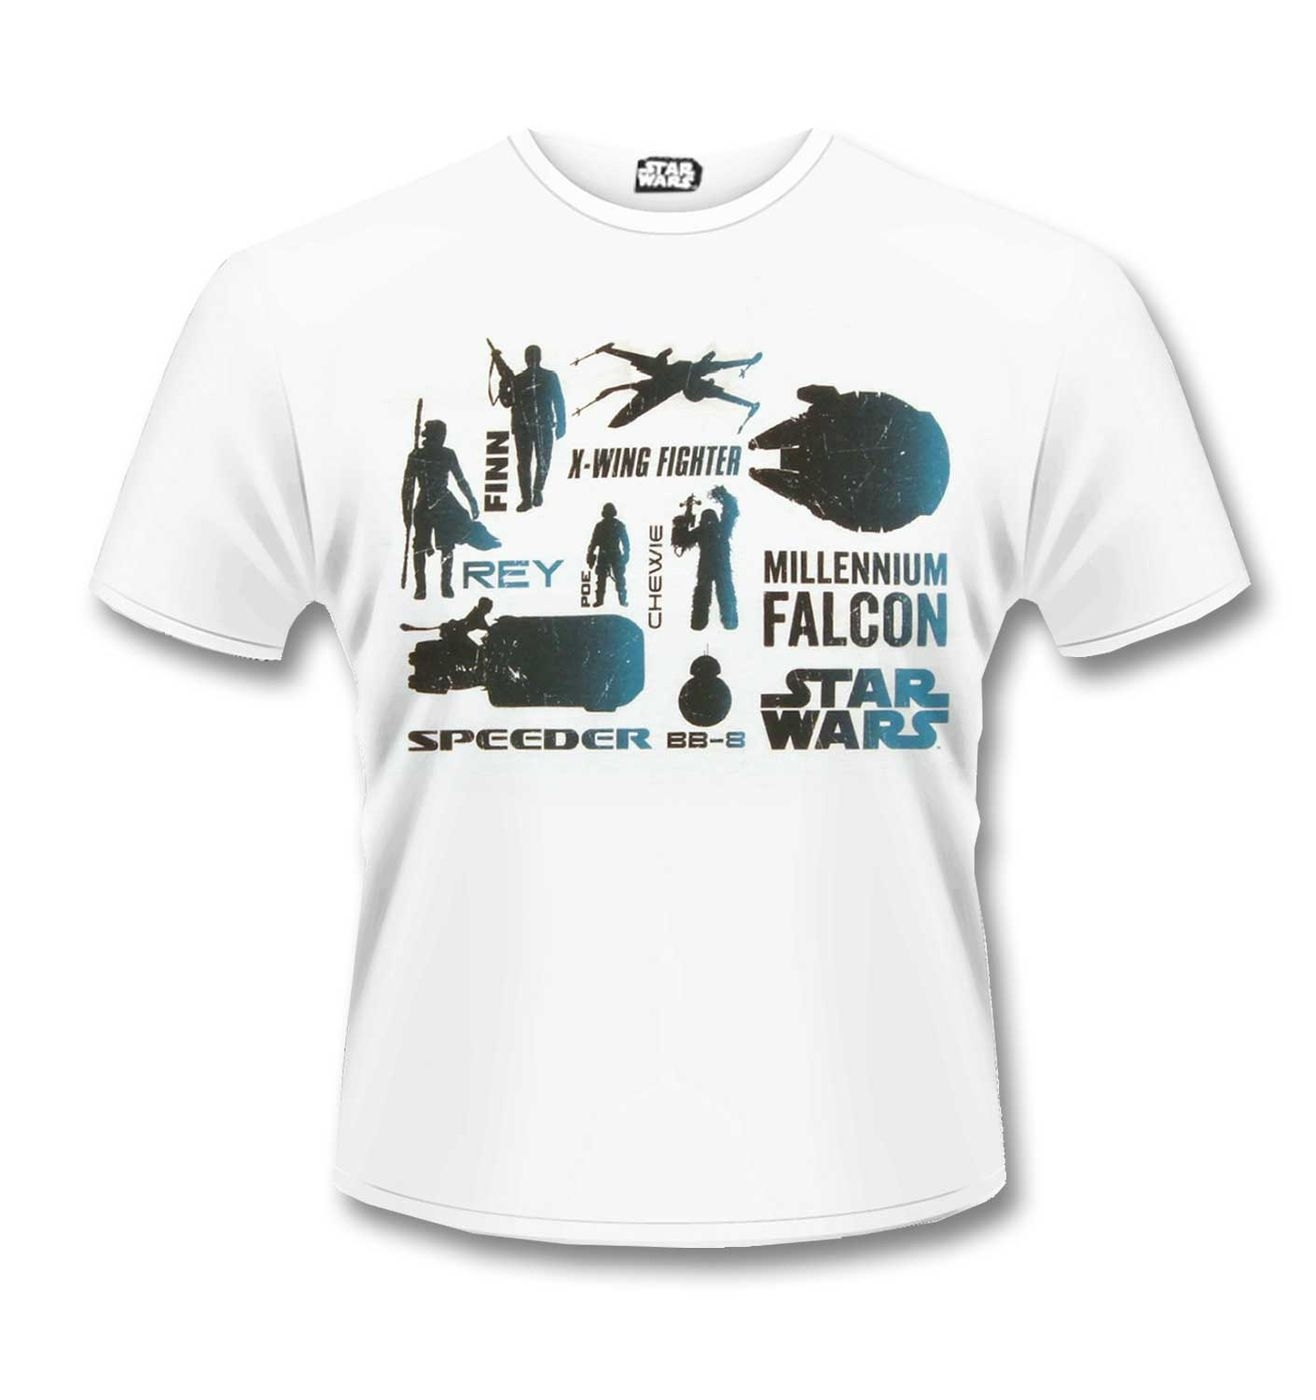 The Force Awakens Heroes t-shirt - official Star Wars merchandise